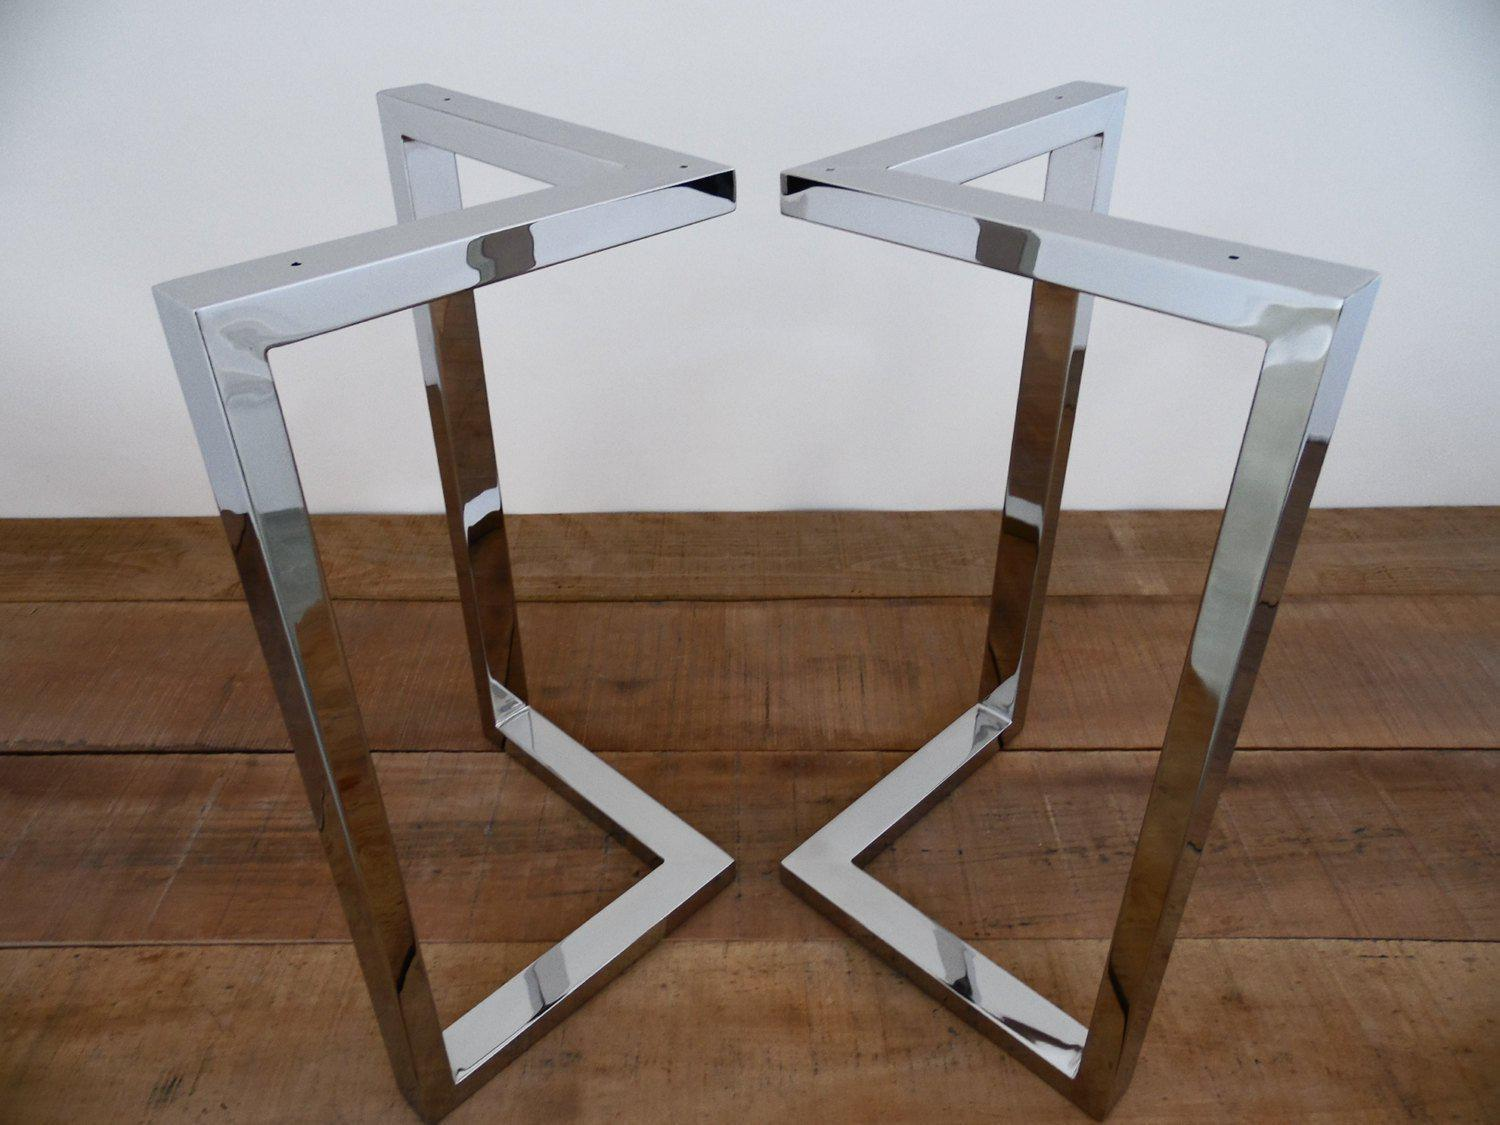 Metal Table Legs And Bases Furniture Legs